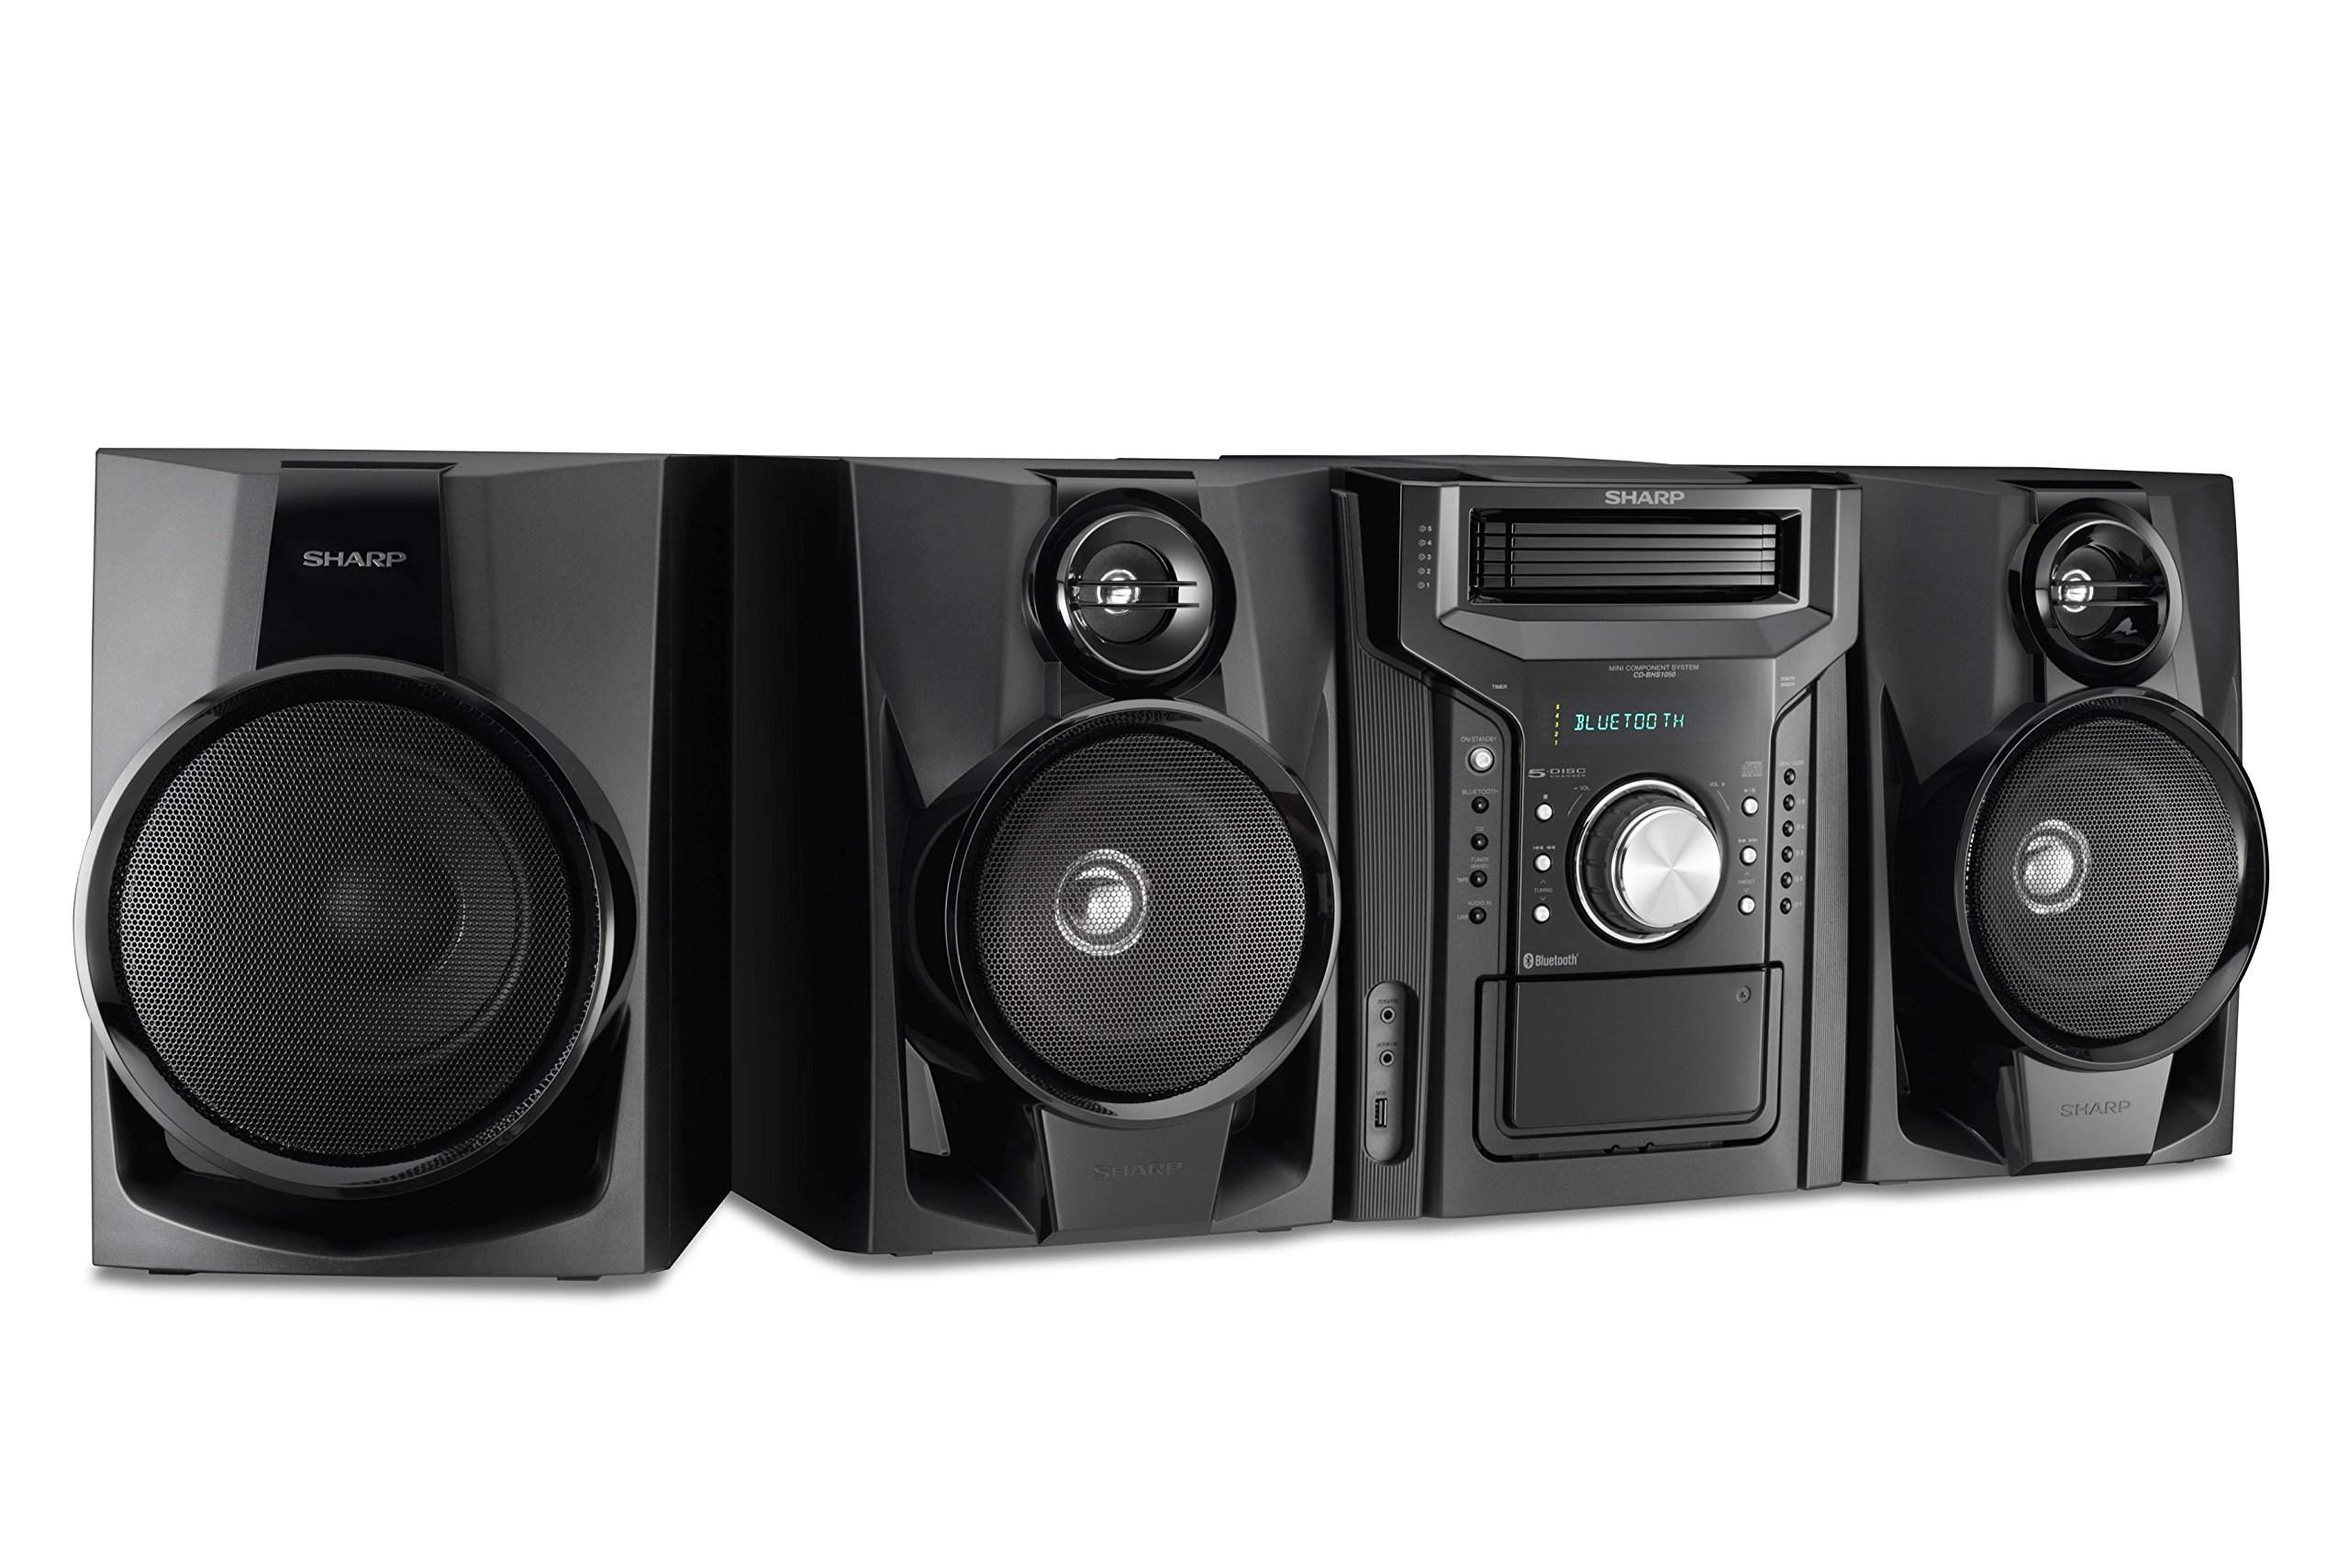 Sharp CD-BHS1050 350W 5-Disc Mini Shelf Speaker/Subwoofer System with Cassette and Bluetooth, AM/FM Digital Tuner, USB Port for MP3 Playback, 350W RMS Power Output and 875W Peak Power, Remote Included by Sharp